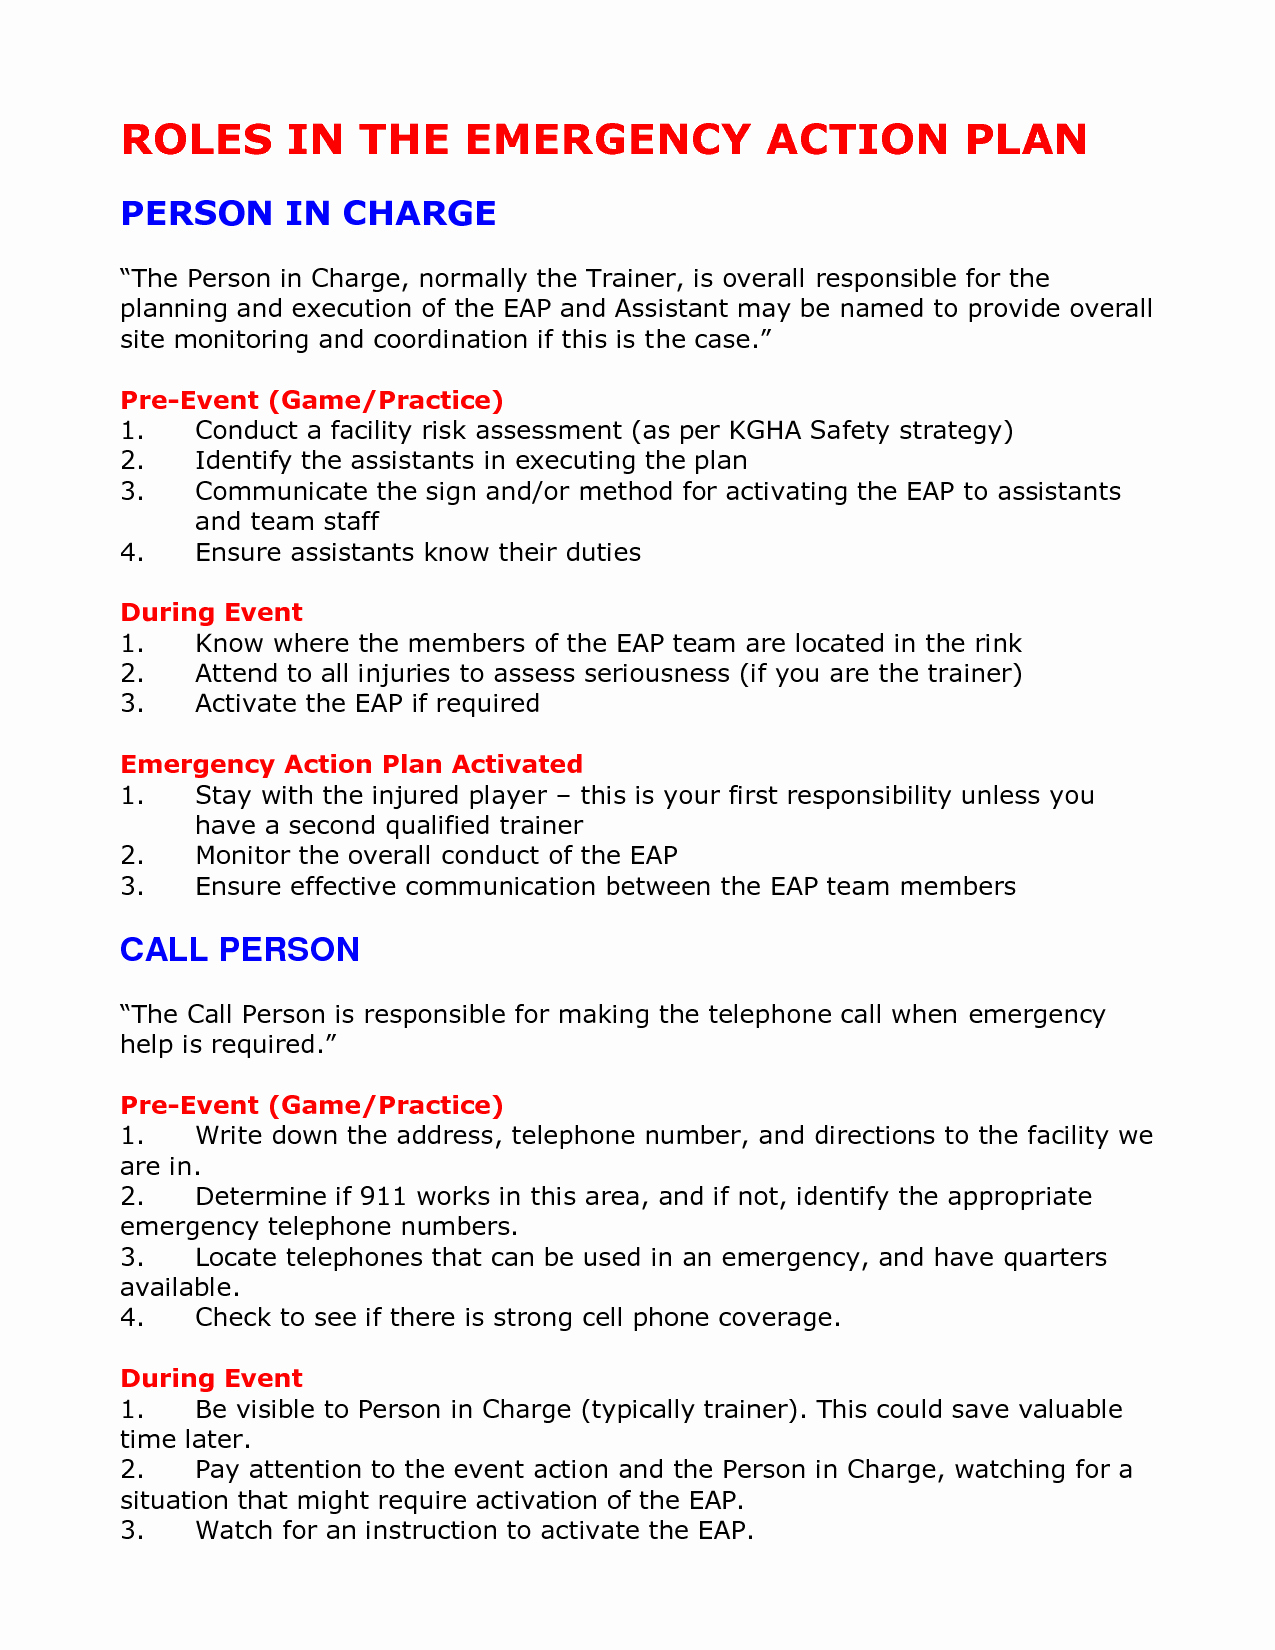 Emergency Action Plan Template Inspirational Emergency Action Plan Template